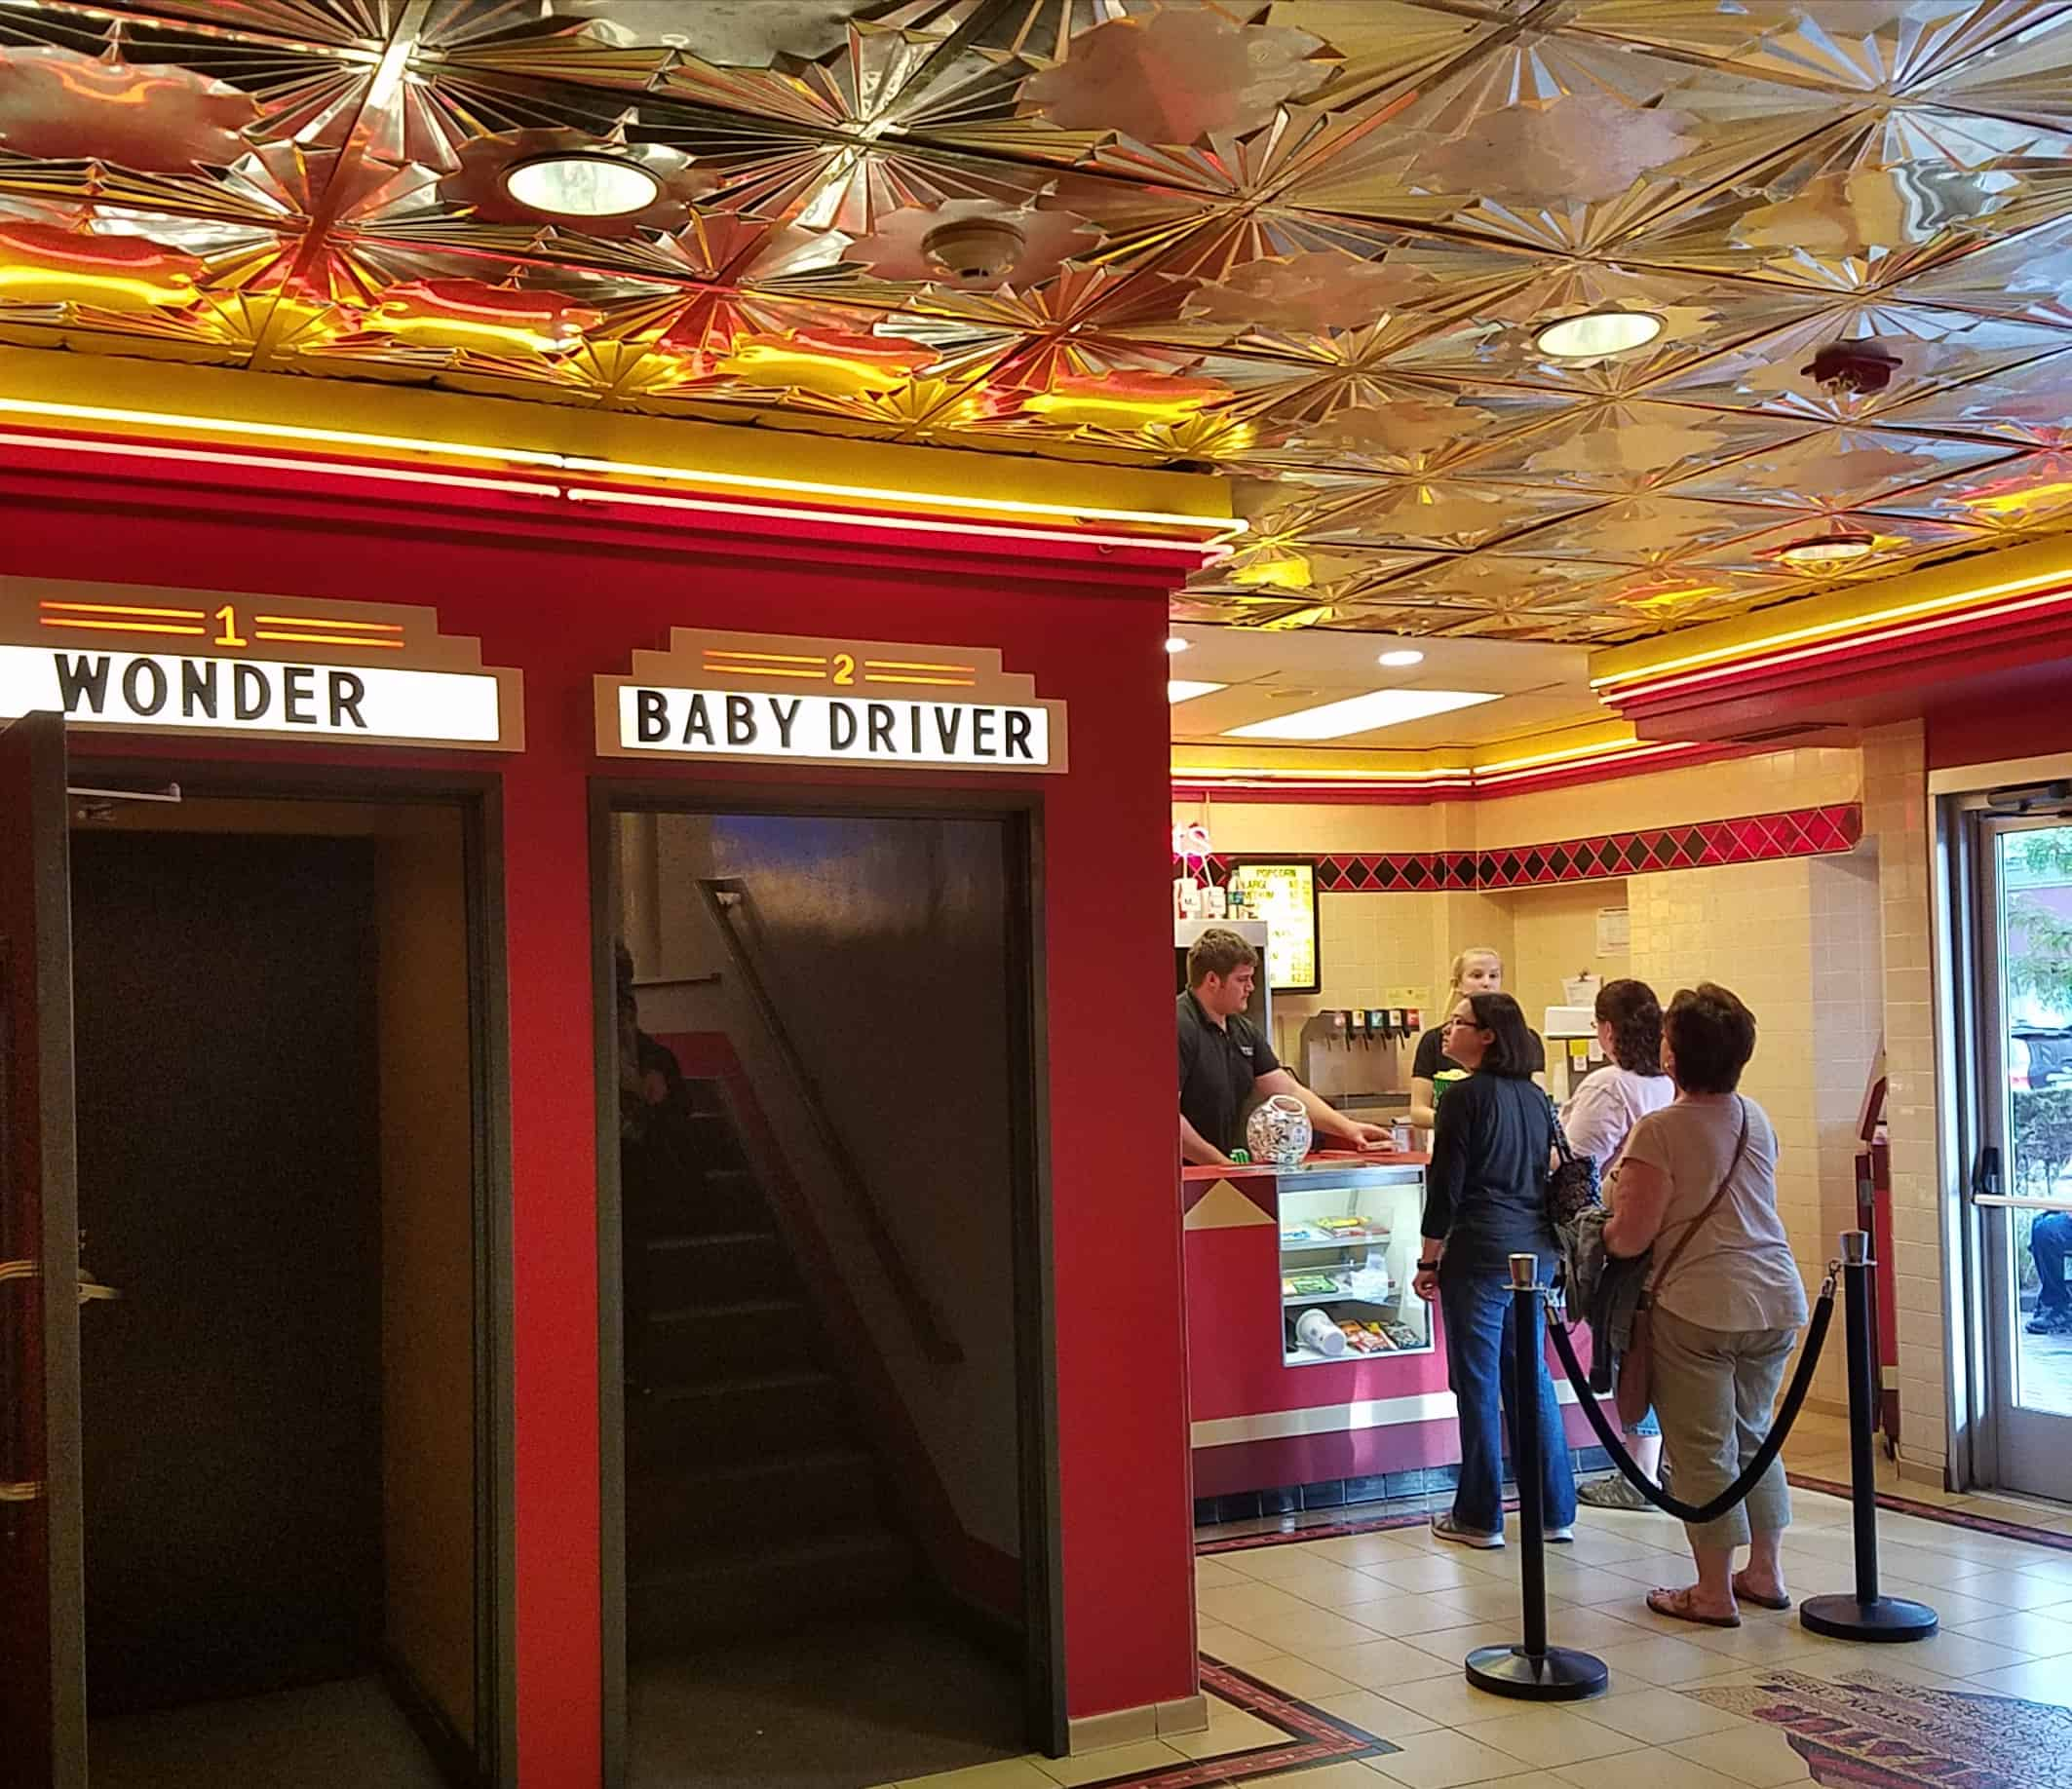 9 Theaters To See A Movie For $6 Or Less - The Awesome Mitten